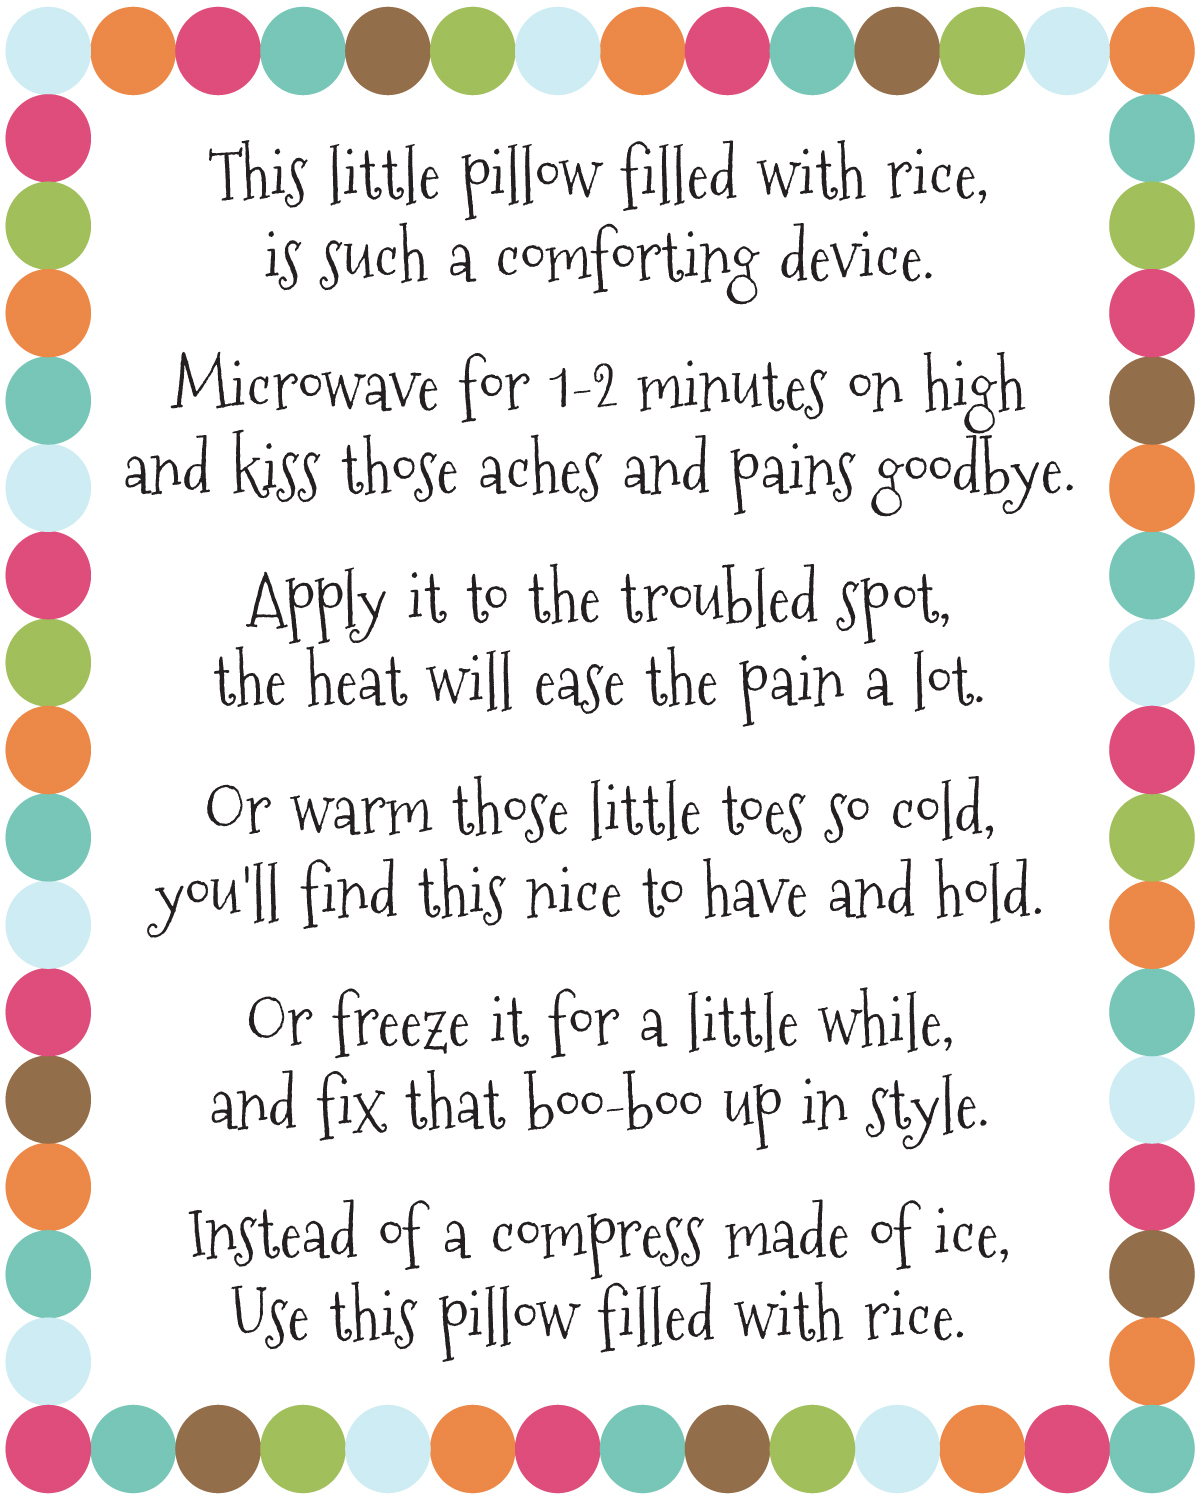 DIY Rice Bag Warmers Poem Printable at artsyfartsymama.com #printable ...